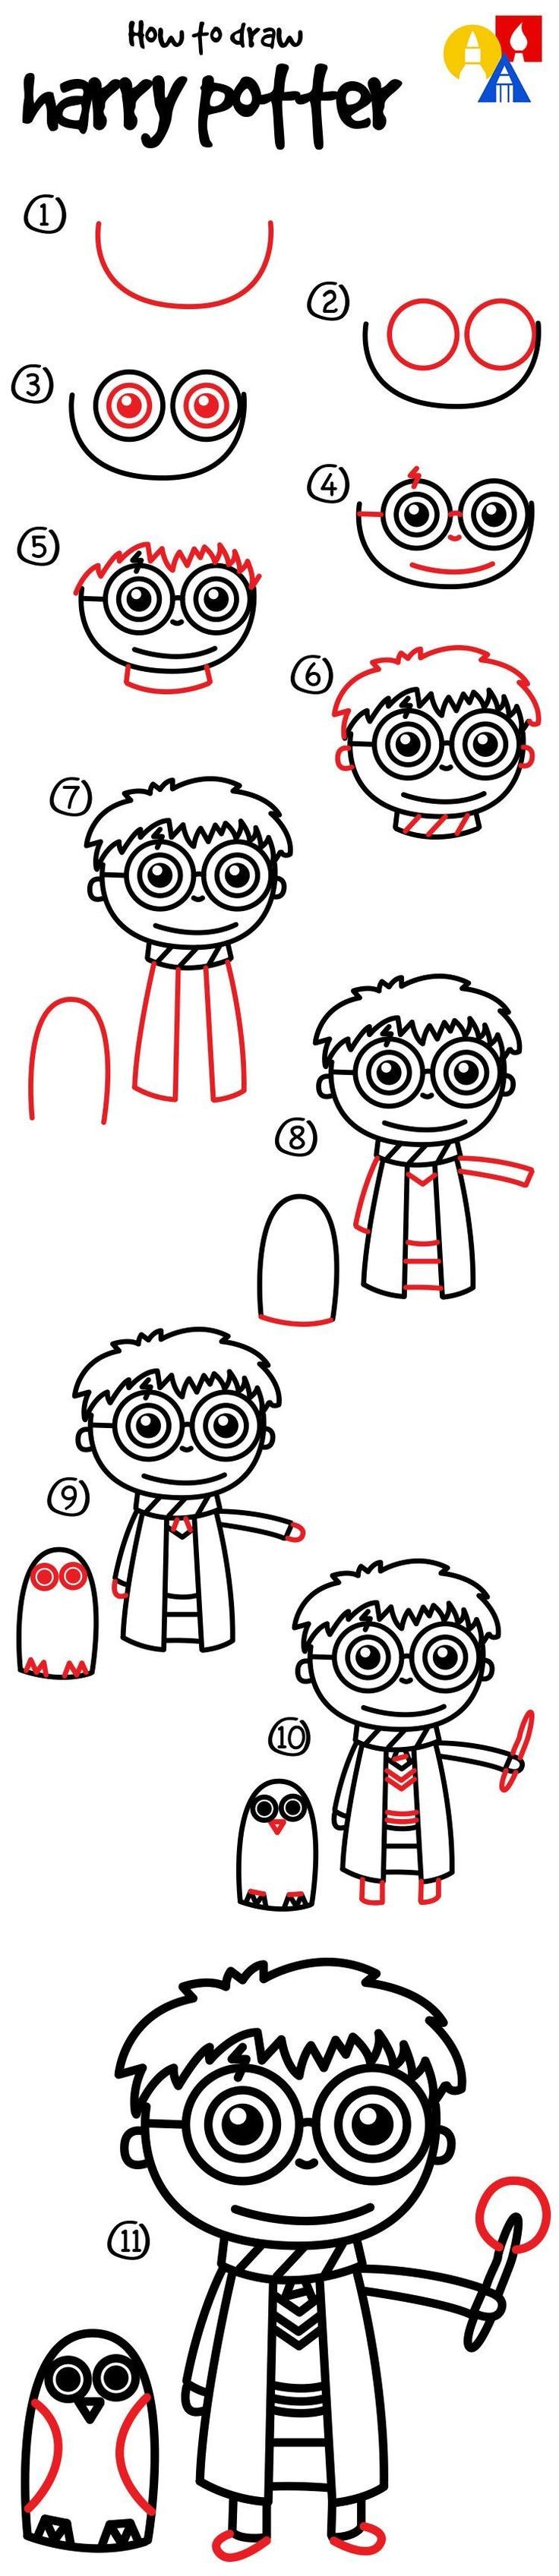 736x3393 How To Draw Harry Potter Stuff